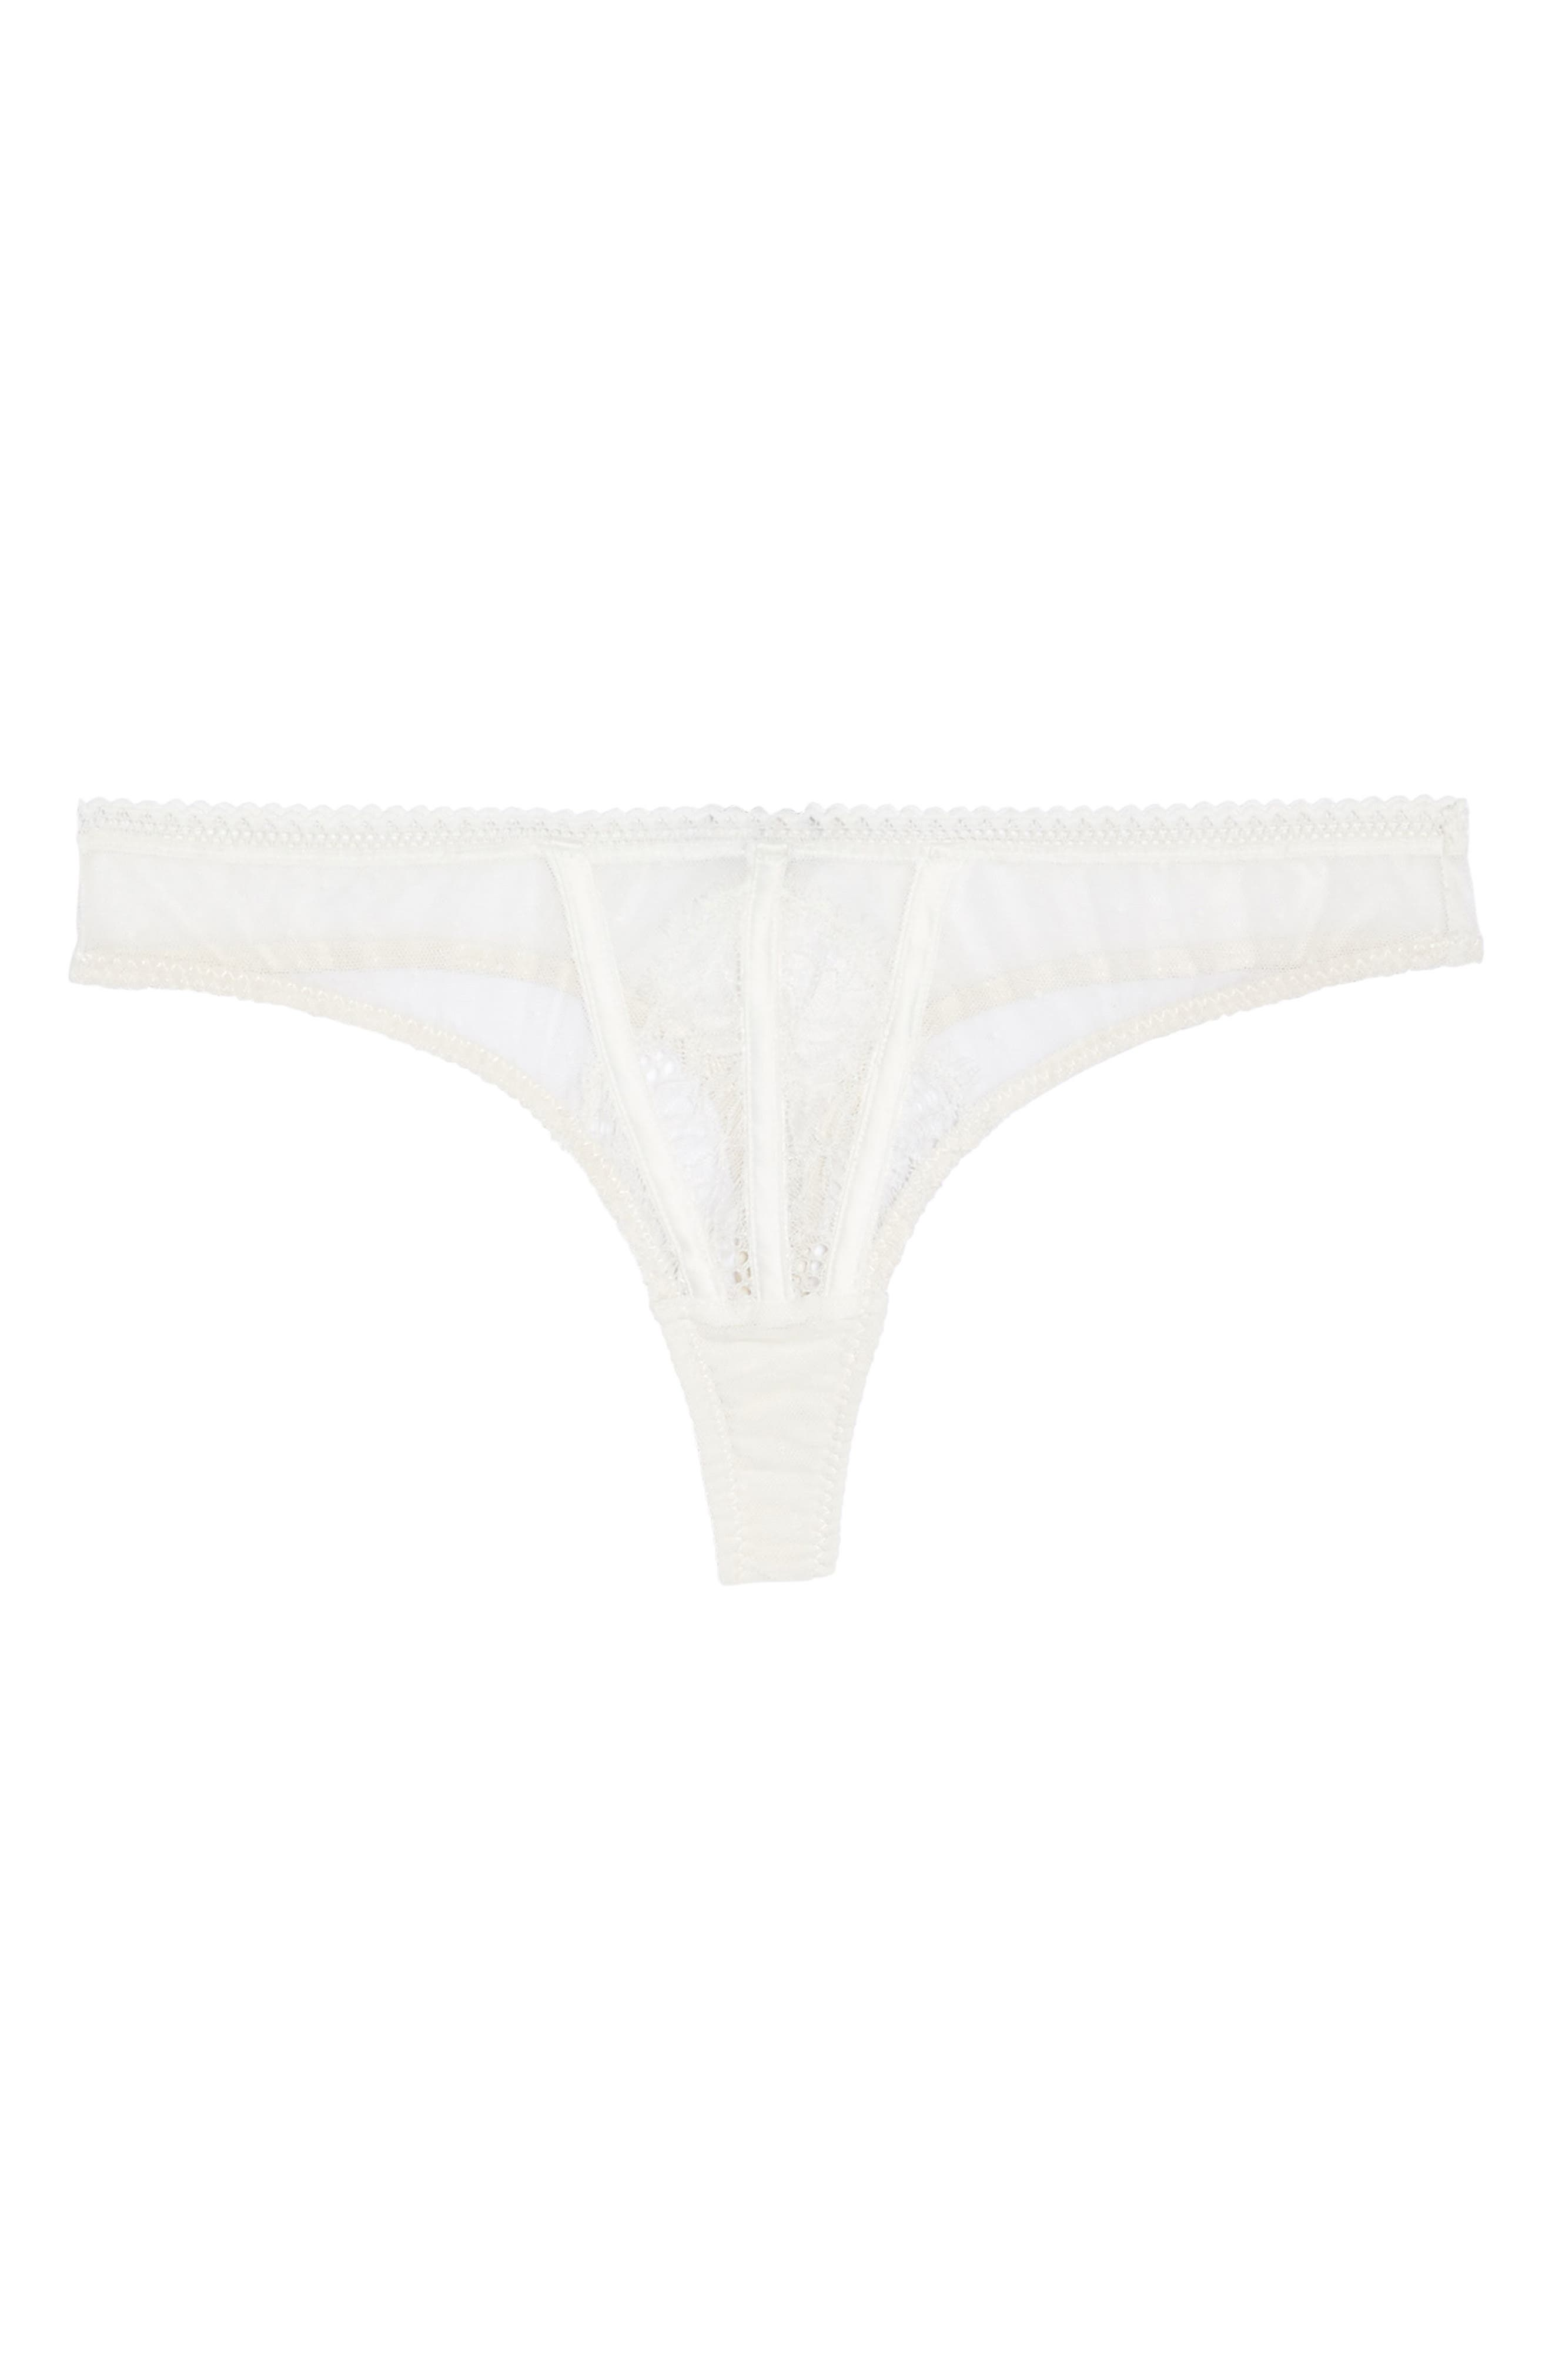 Thistle & Spire All Wrapped Up Thong,                             Alternate thumbnail 18, color,